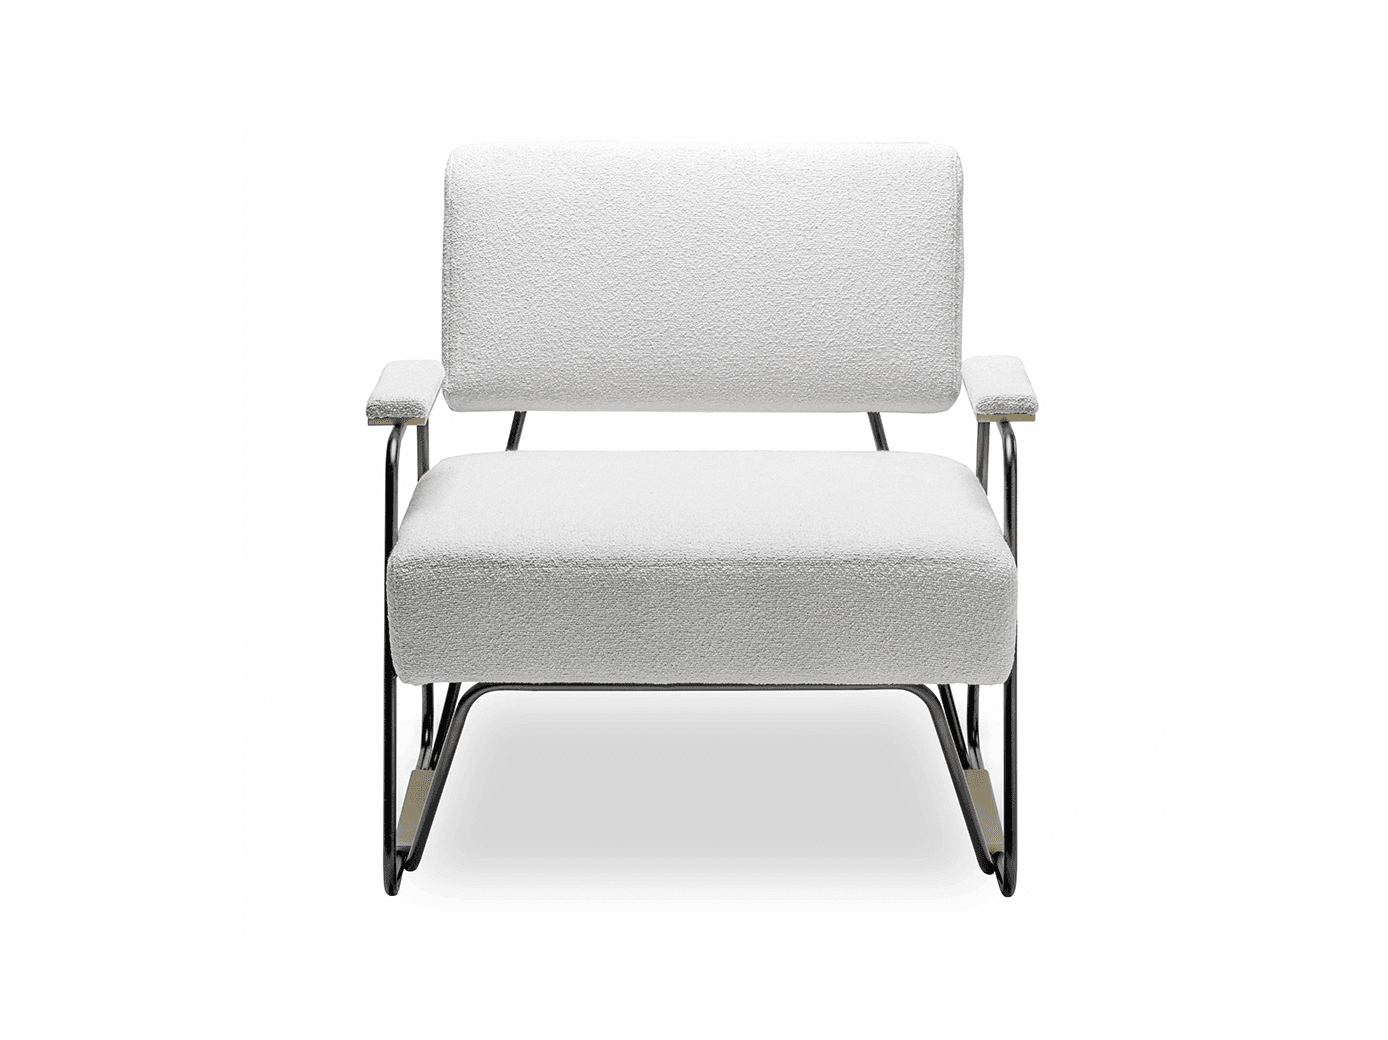 This modern chair brings luxury to the simple design, something bold and at the same time so clean. Straight lines and stunning details.